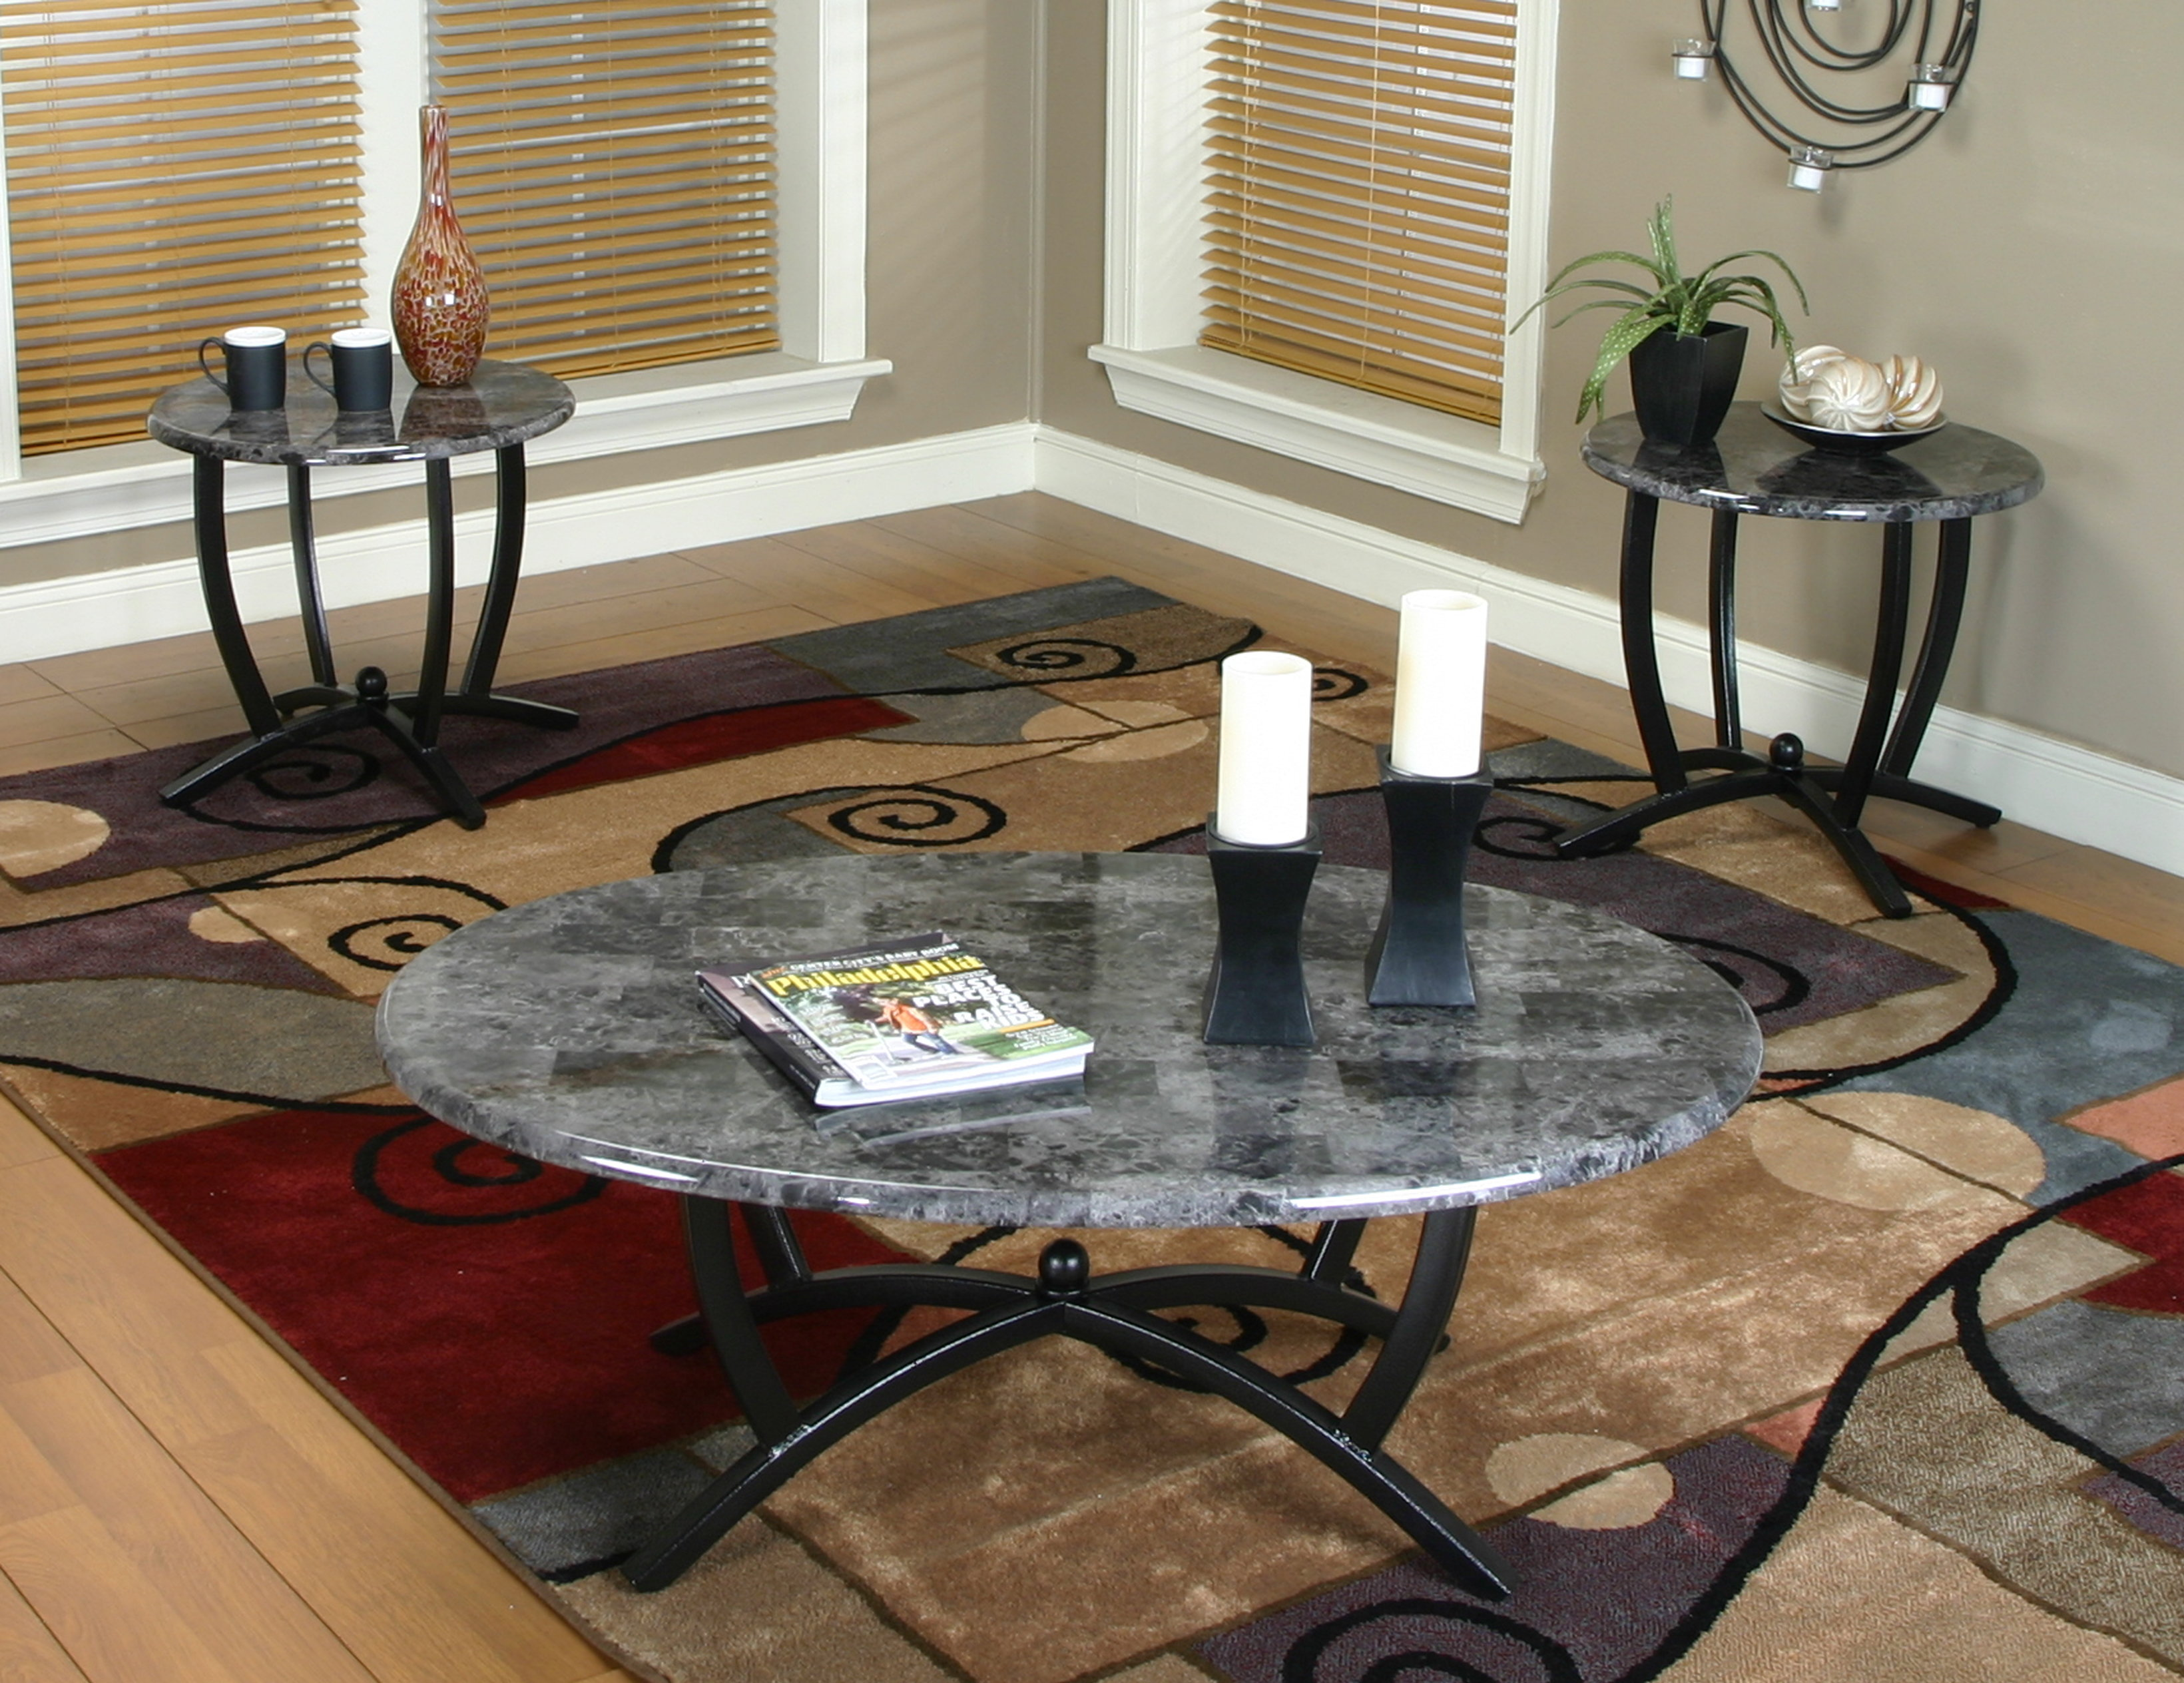 grey coffee and end table set designs fascinating accent tables for living room knurl nesting two wonderful cof forazhouse traditional lamps bedroom small outdoor barnwood plans